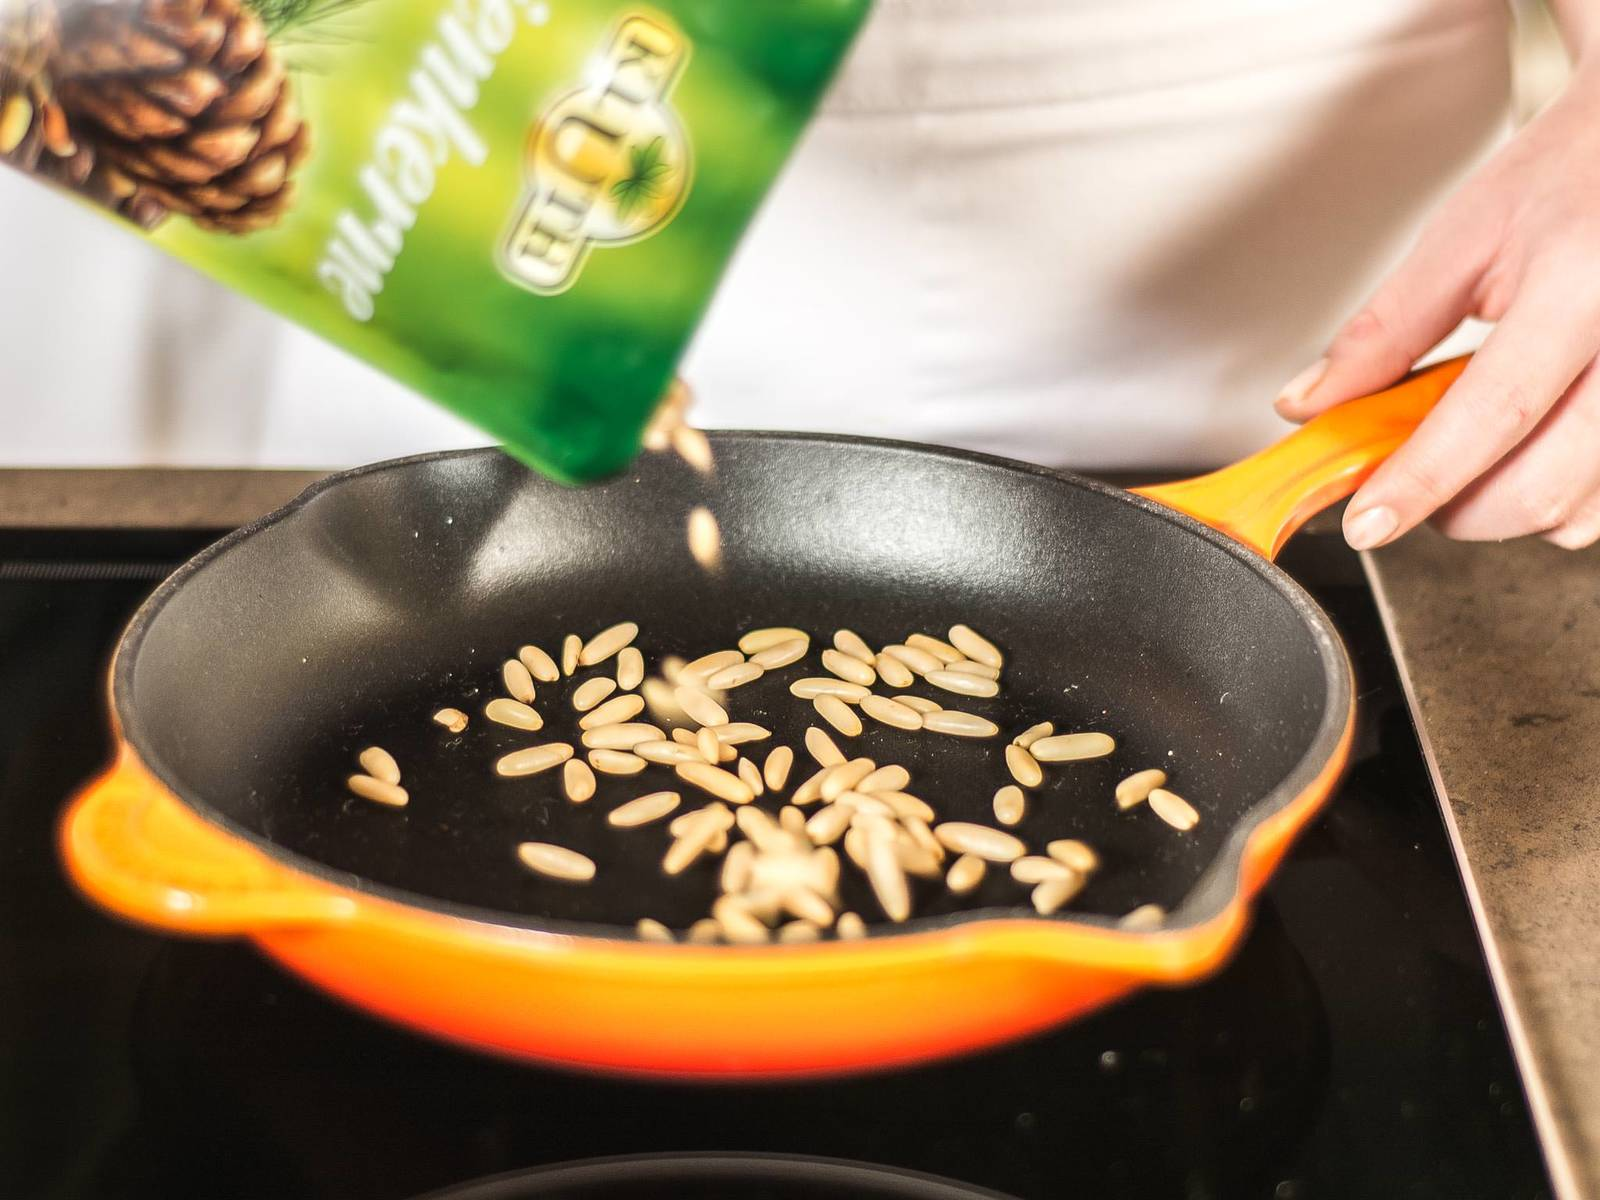 In the meantime, roast pine nuts in a small frying pan until brown, then finely chop them.